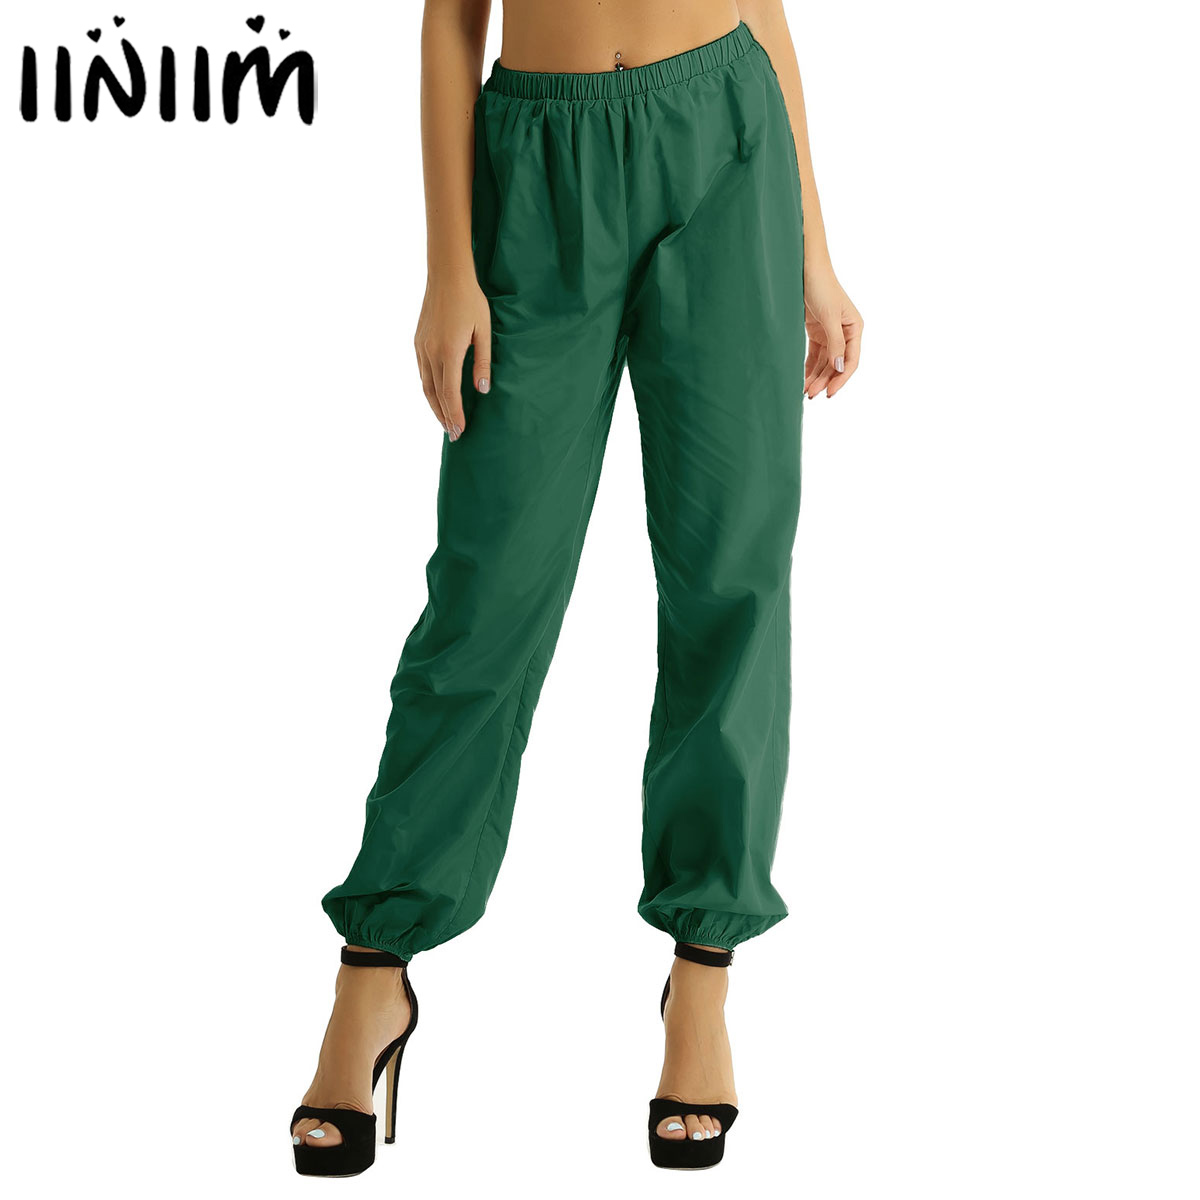 Iiniim Women Ladies Solid Pants High Waist Elastic Waistband Casual Loose Long Ripstop Pants For Dance Hiking And Working Out